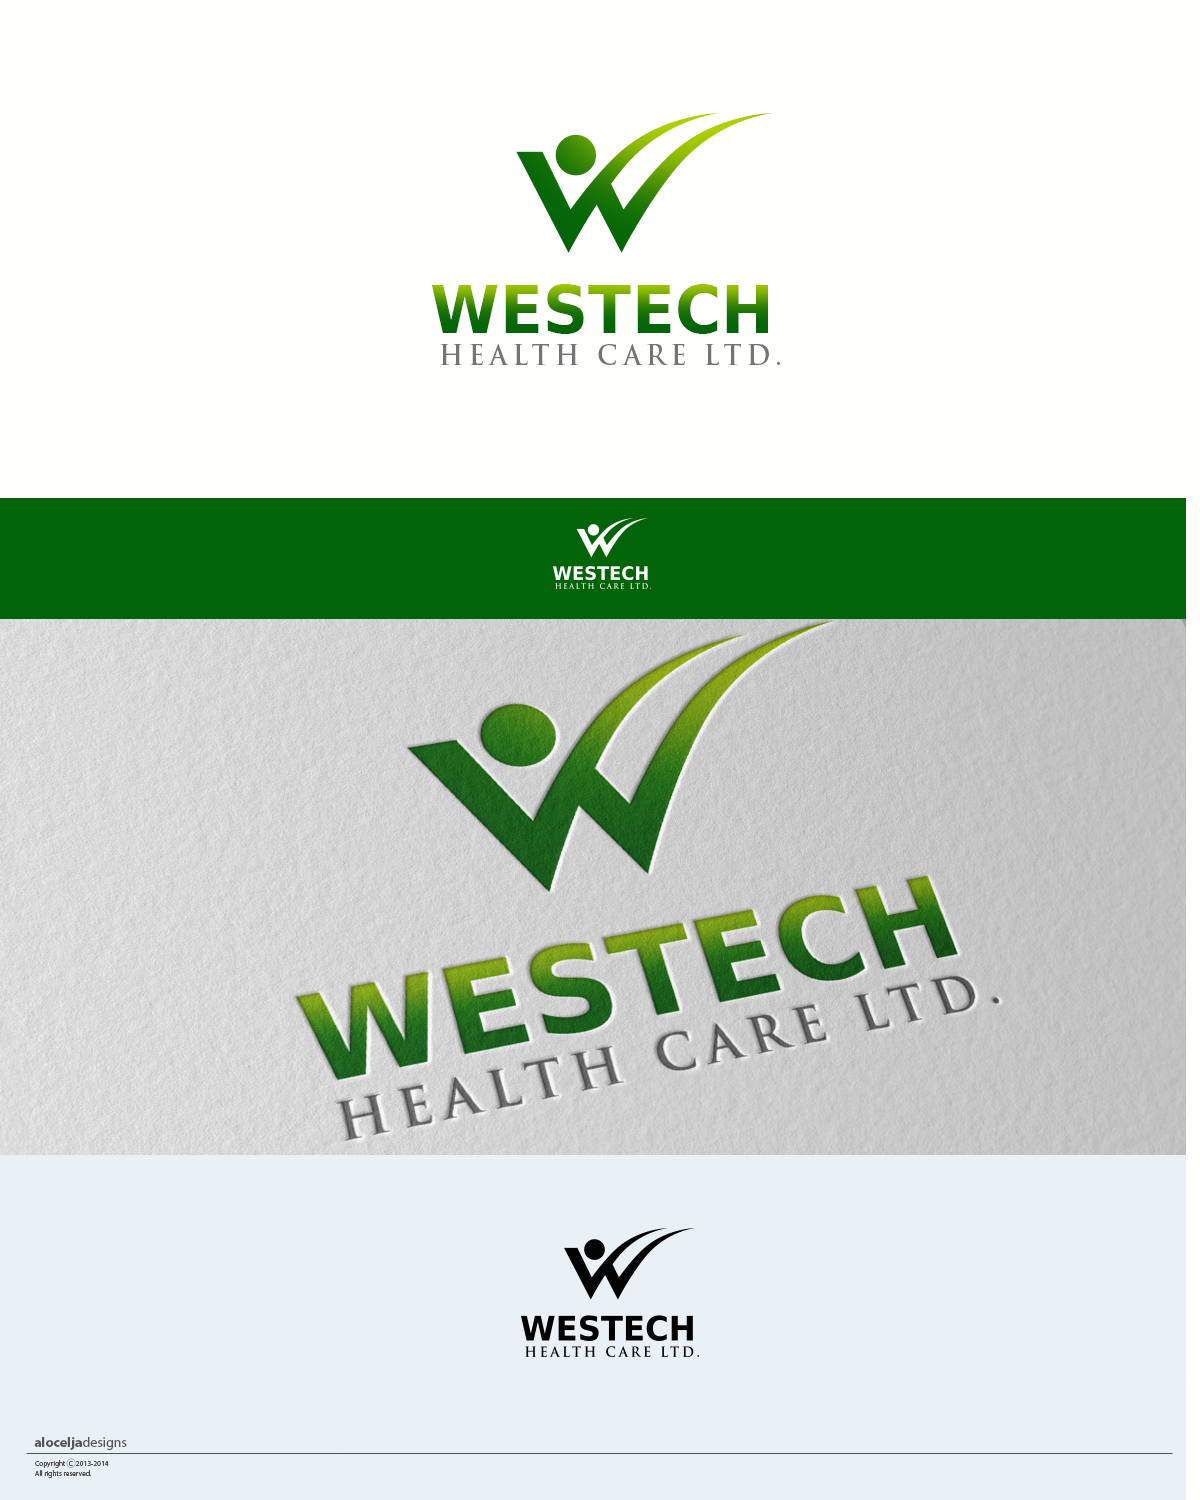 Logo Design by alocelja - Entry No. 3 in the Logo Design Contest Creative Logo Design for Westech Health Care Ltd..